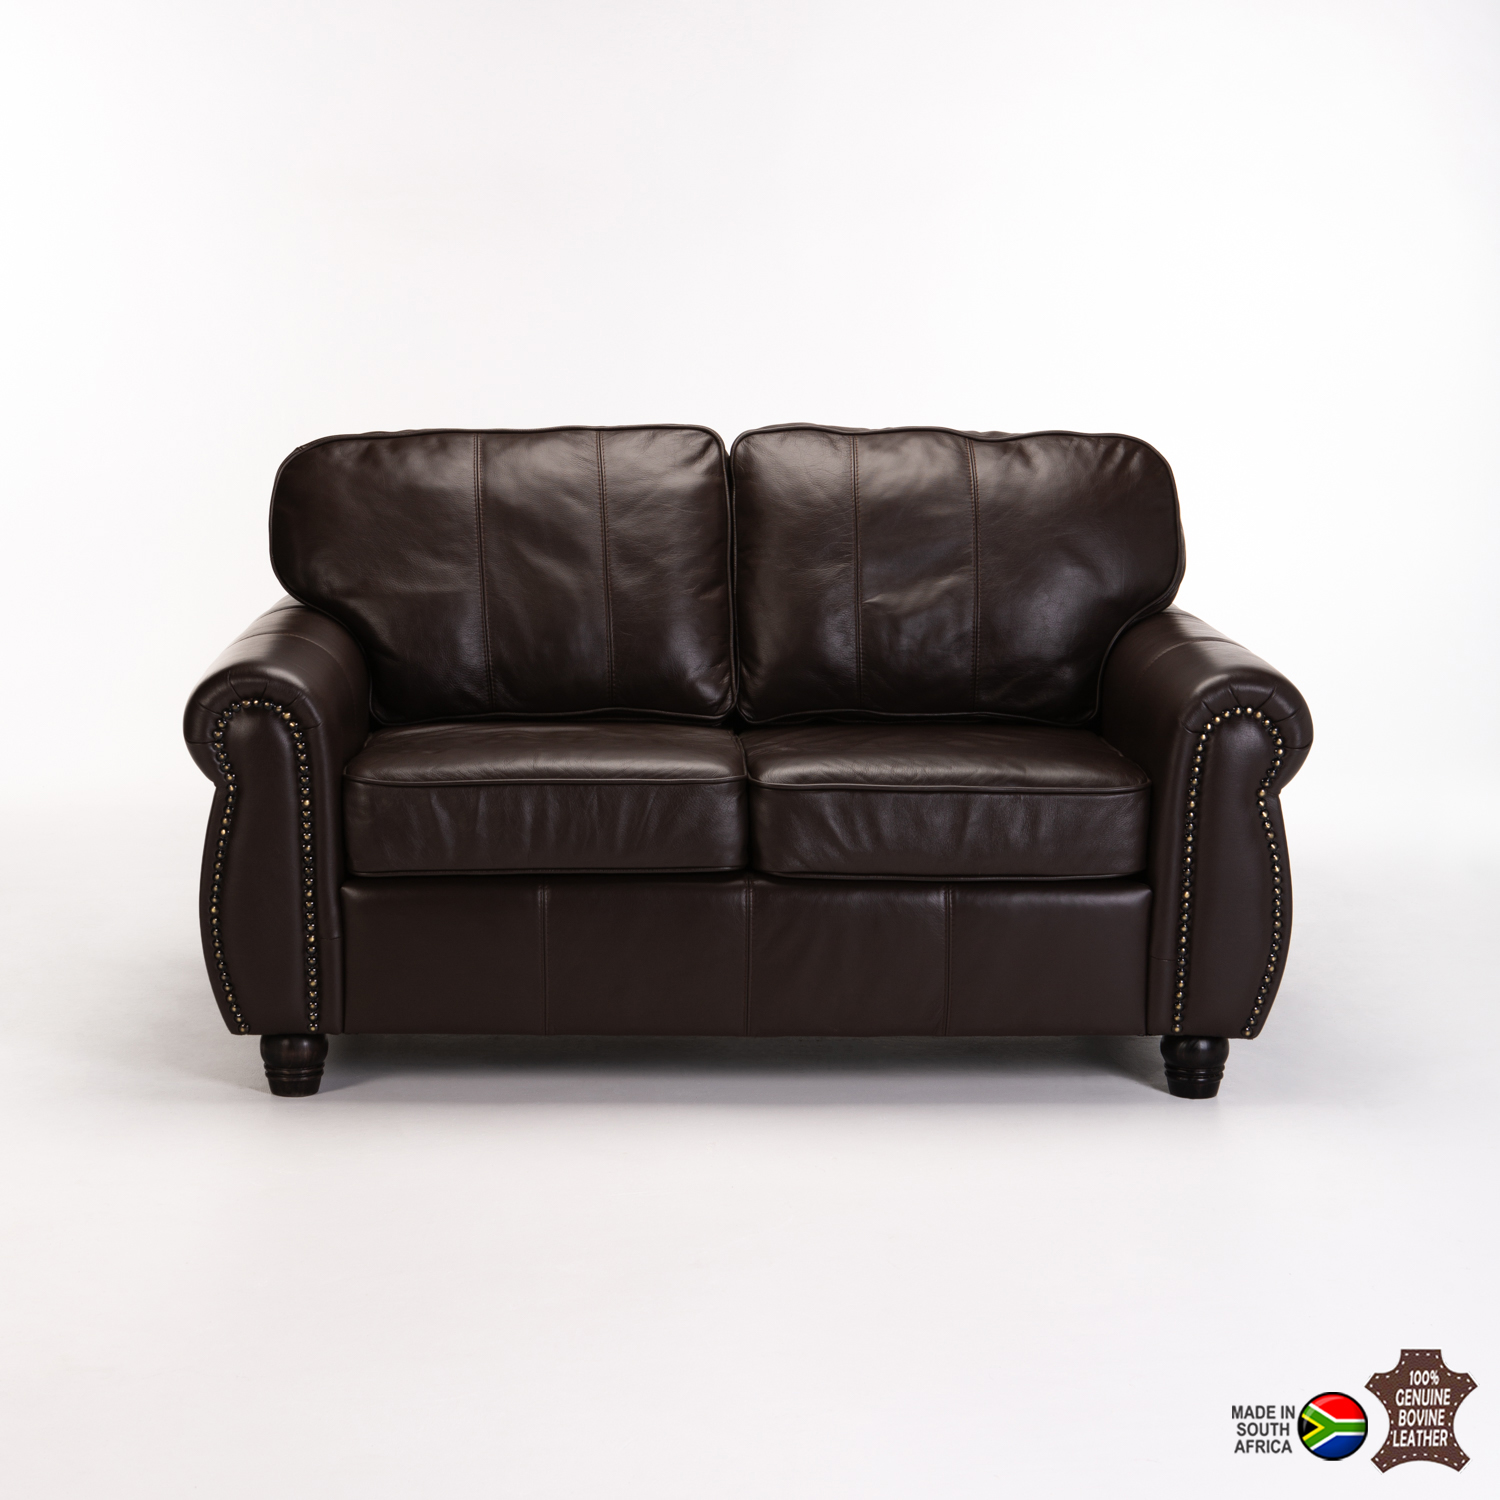 Terrific Decofurn Furniture Kingsley Genuine Leather 2 Seater Lamtechconsult Wood Chair Design Ideas Lamtechconsultcom